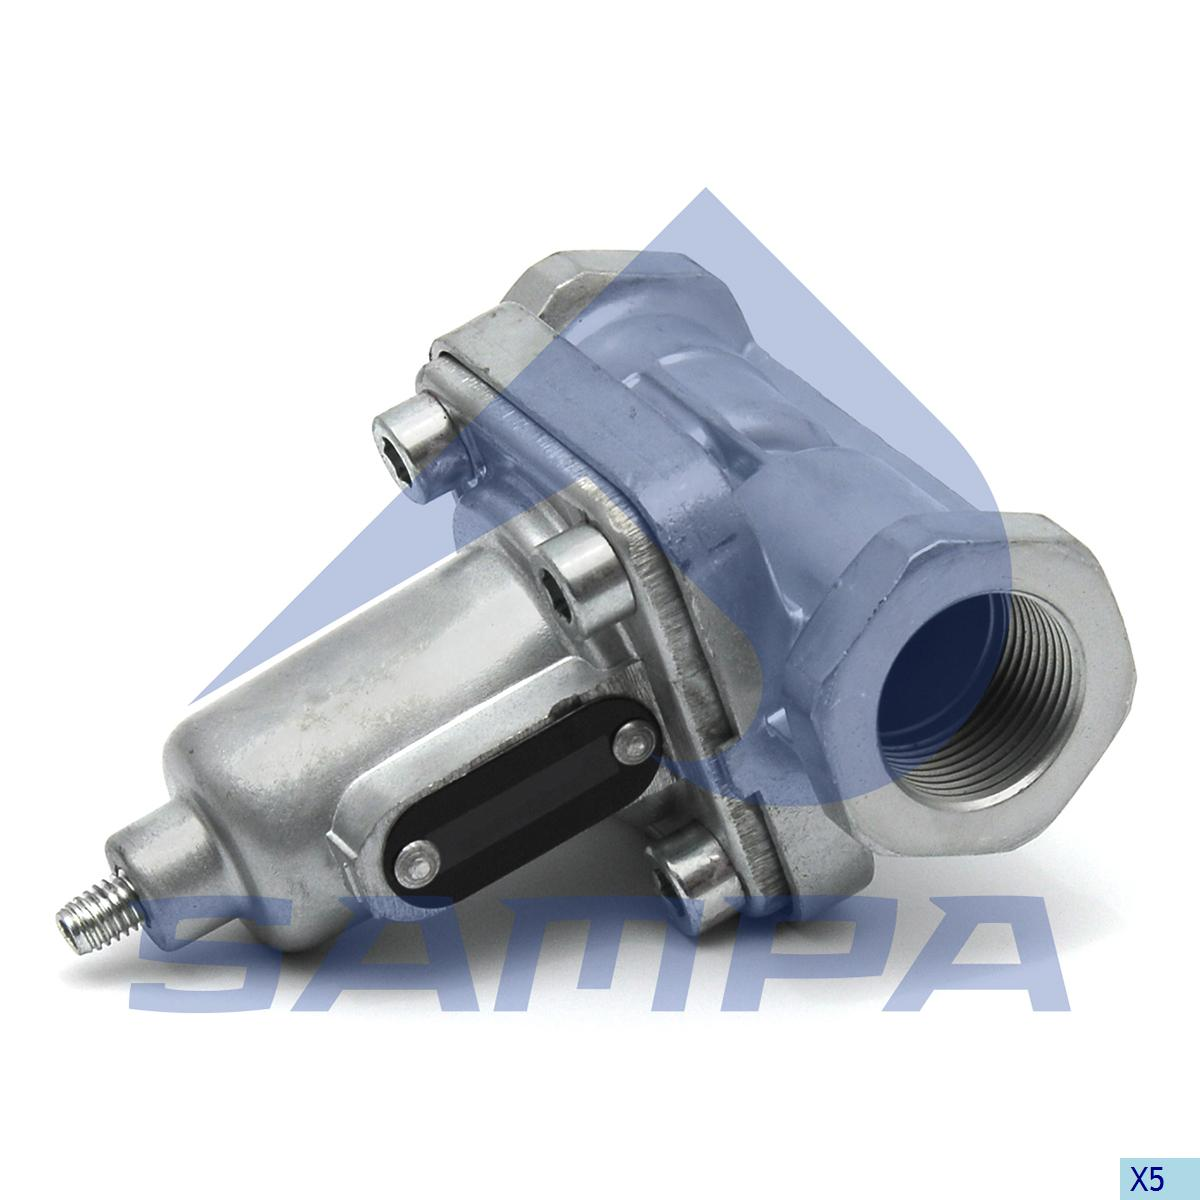 Overflow Valve, Iveco, Compressed Air System